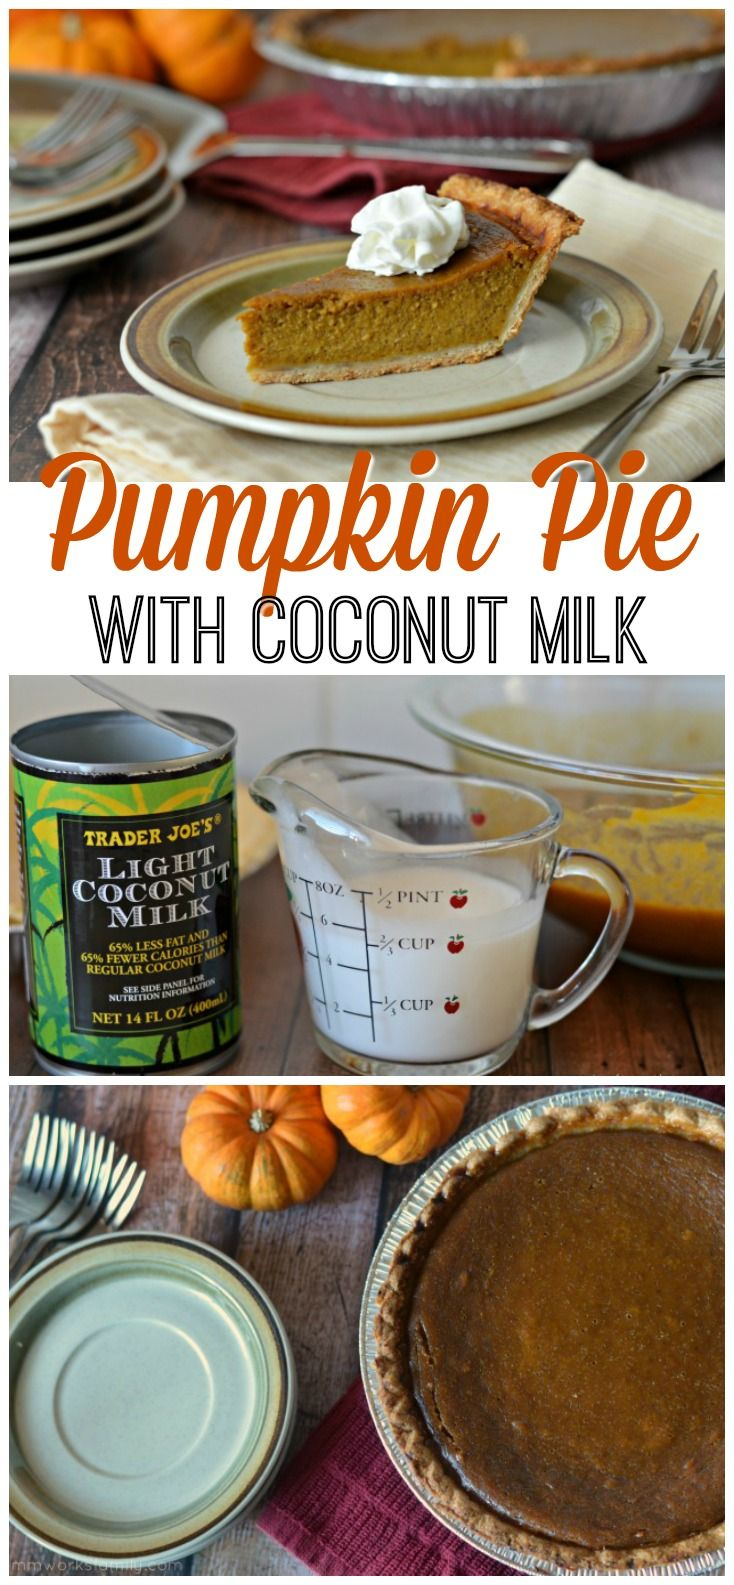 This Pumpkin Pie With Coconut Milk Is Perfect For Those Who Are Dairy Free Or Who Just Don T Have C Pumpkin Pie Coconut Milk Dairy Free Pumpkin Pie Pumpkin Pie